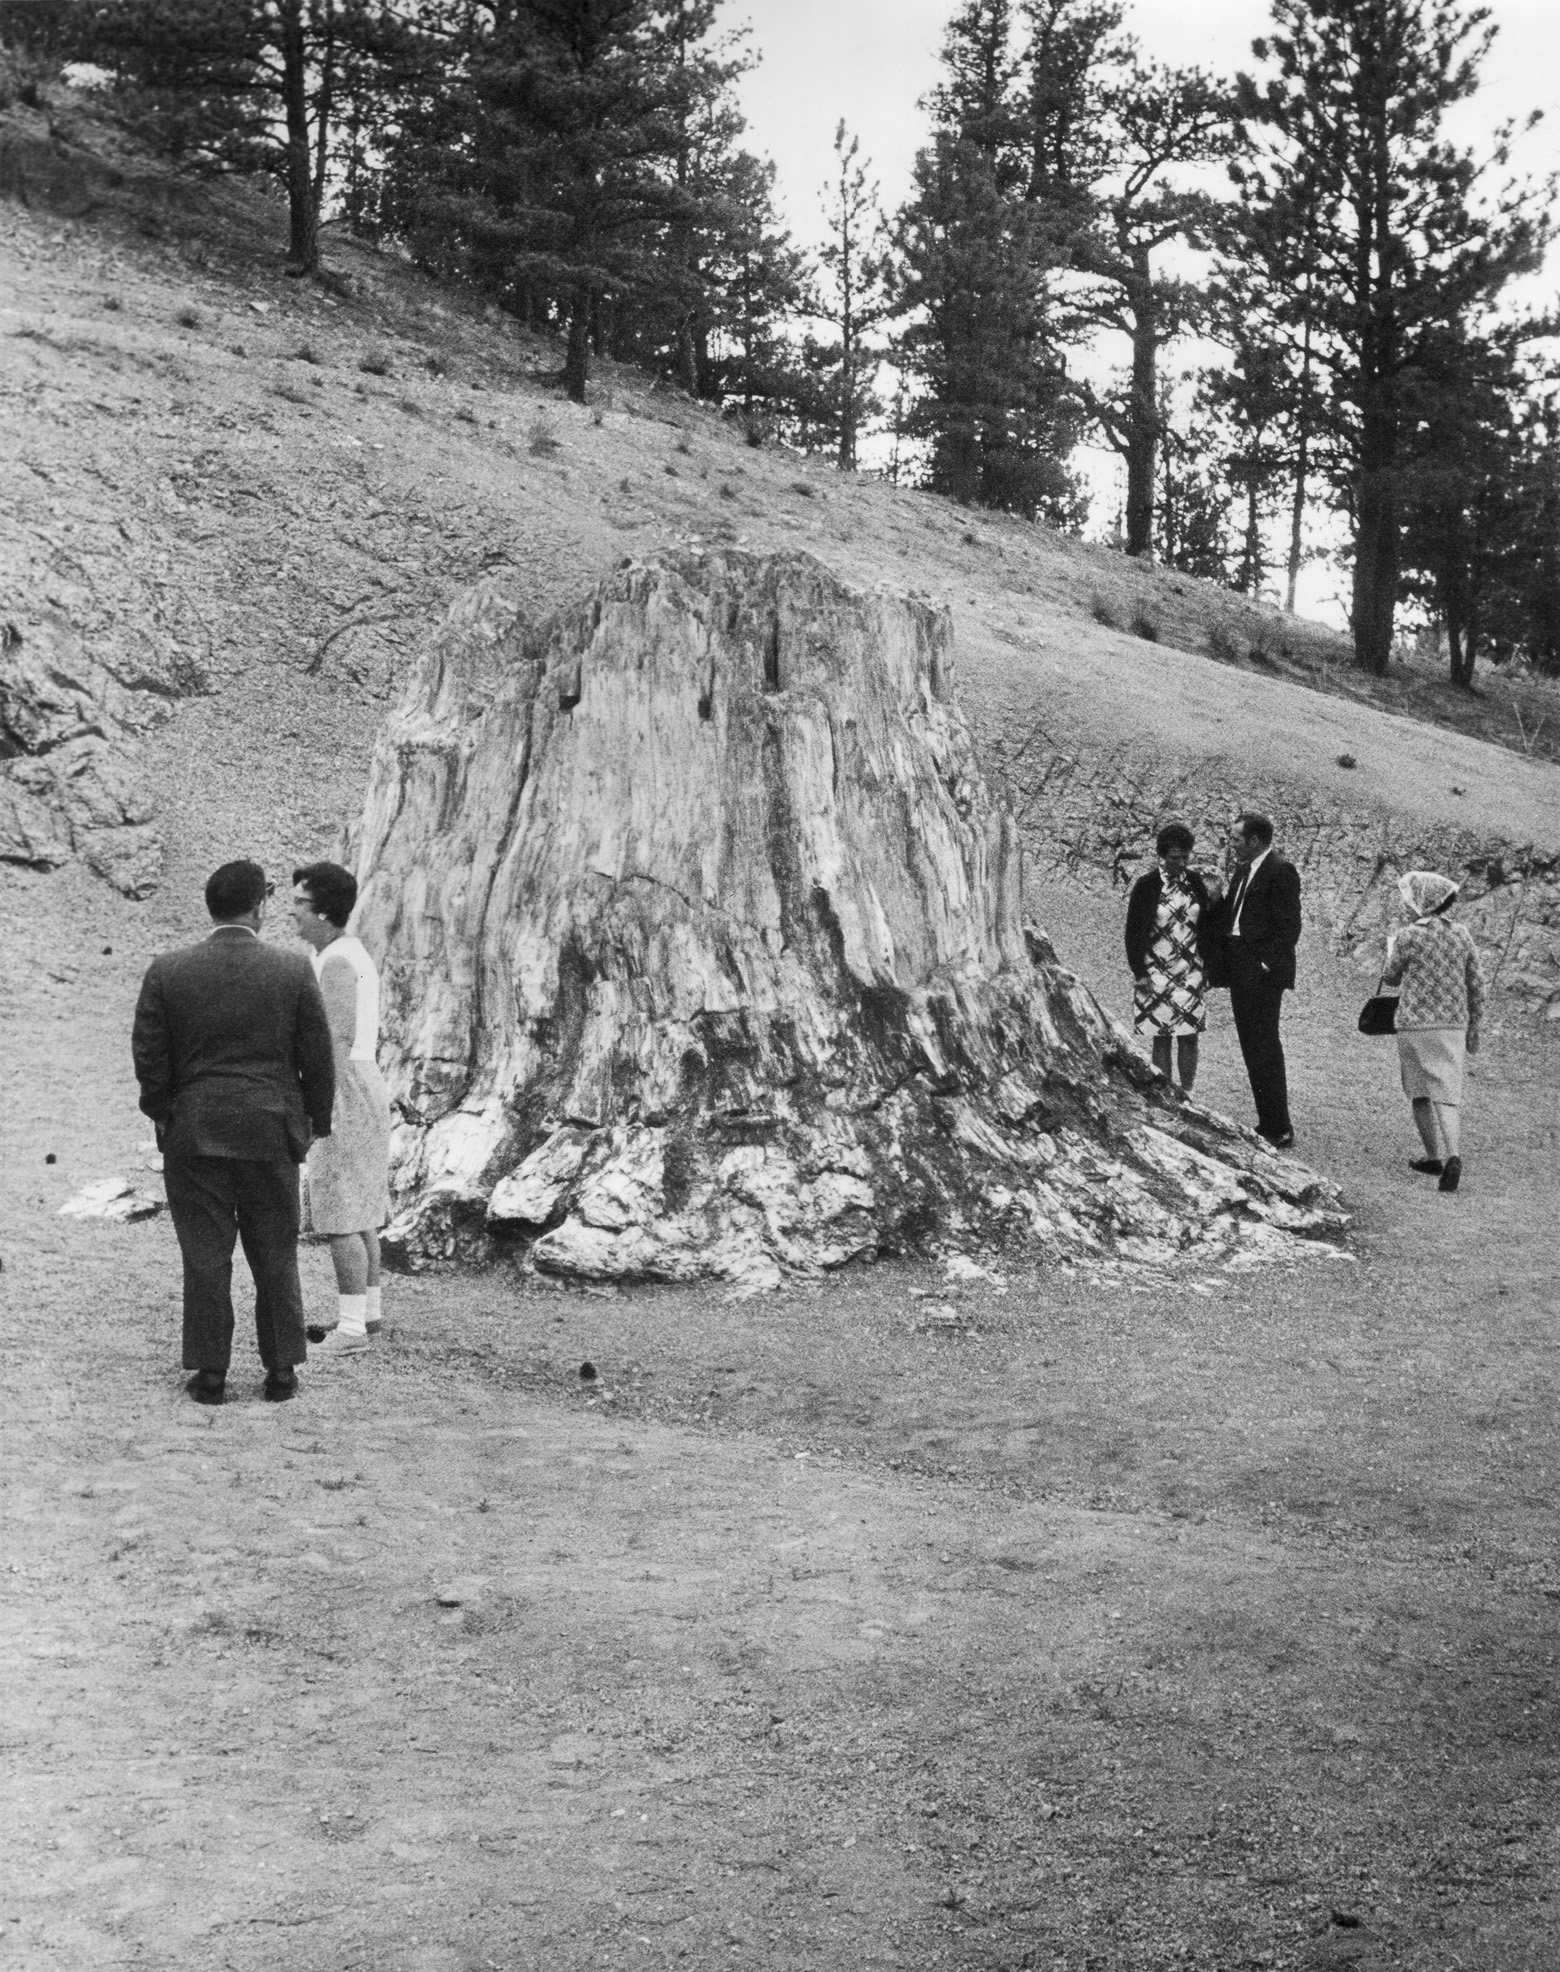 Five people gather around the base of a large petrified stump twice as tall as they are